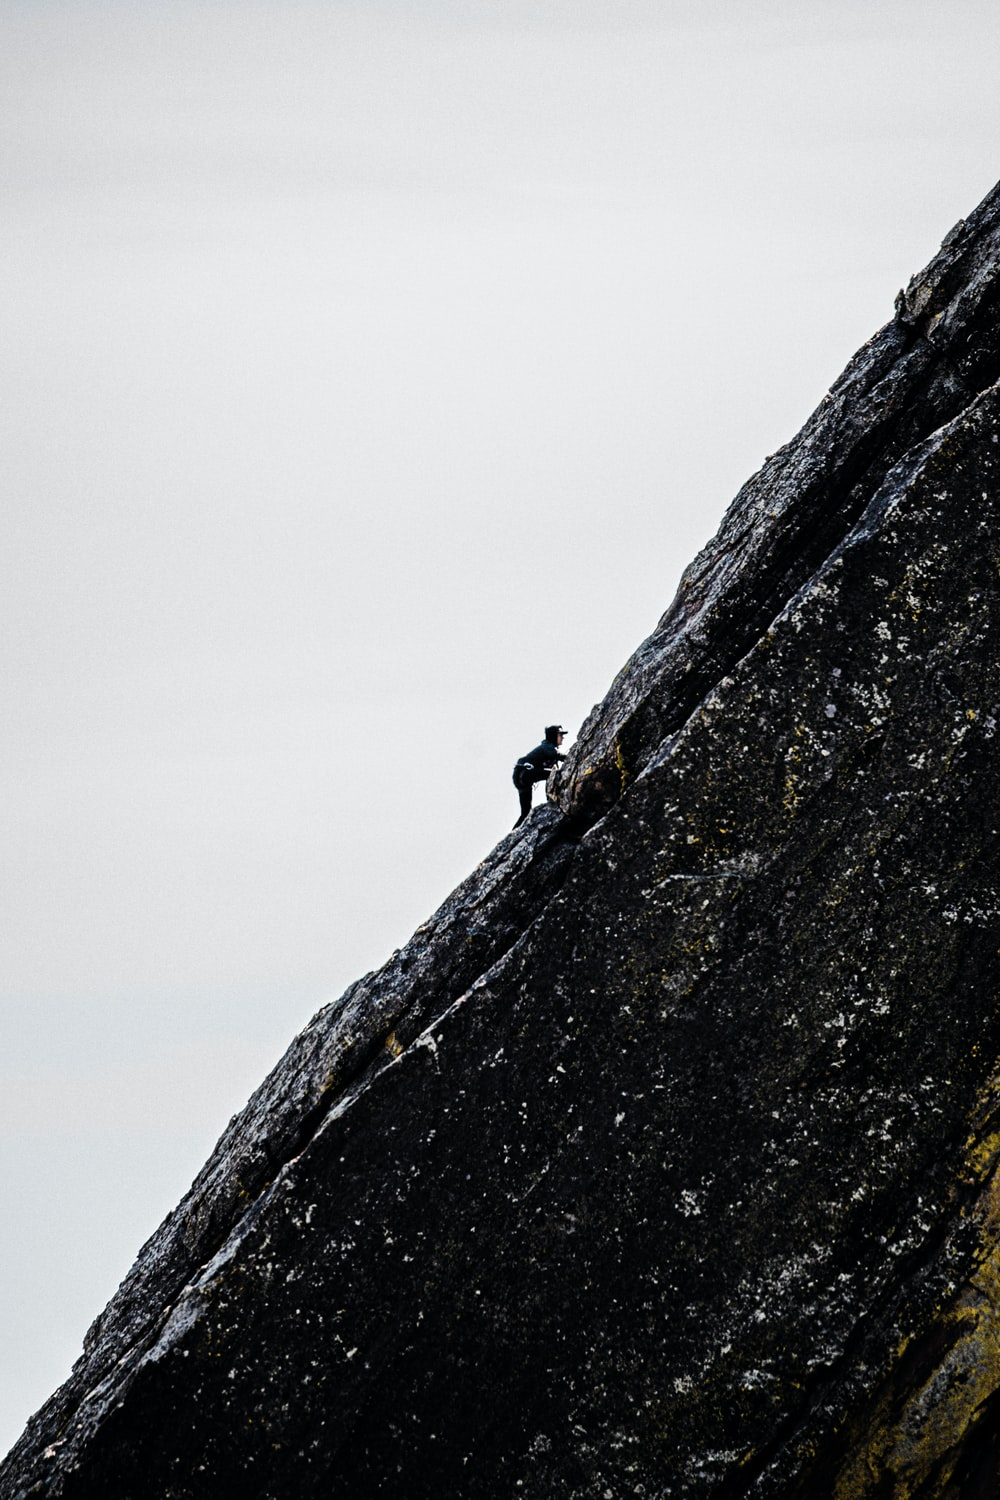 person in black jacket climbing on brown rock mountain during daytime